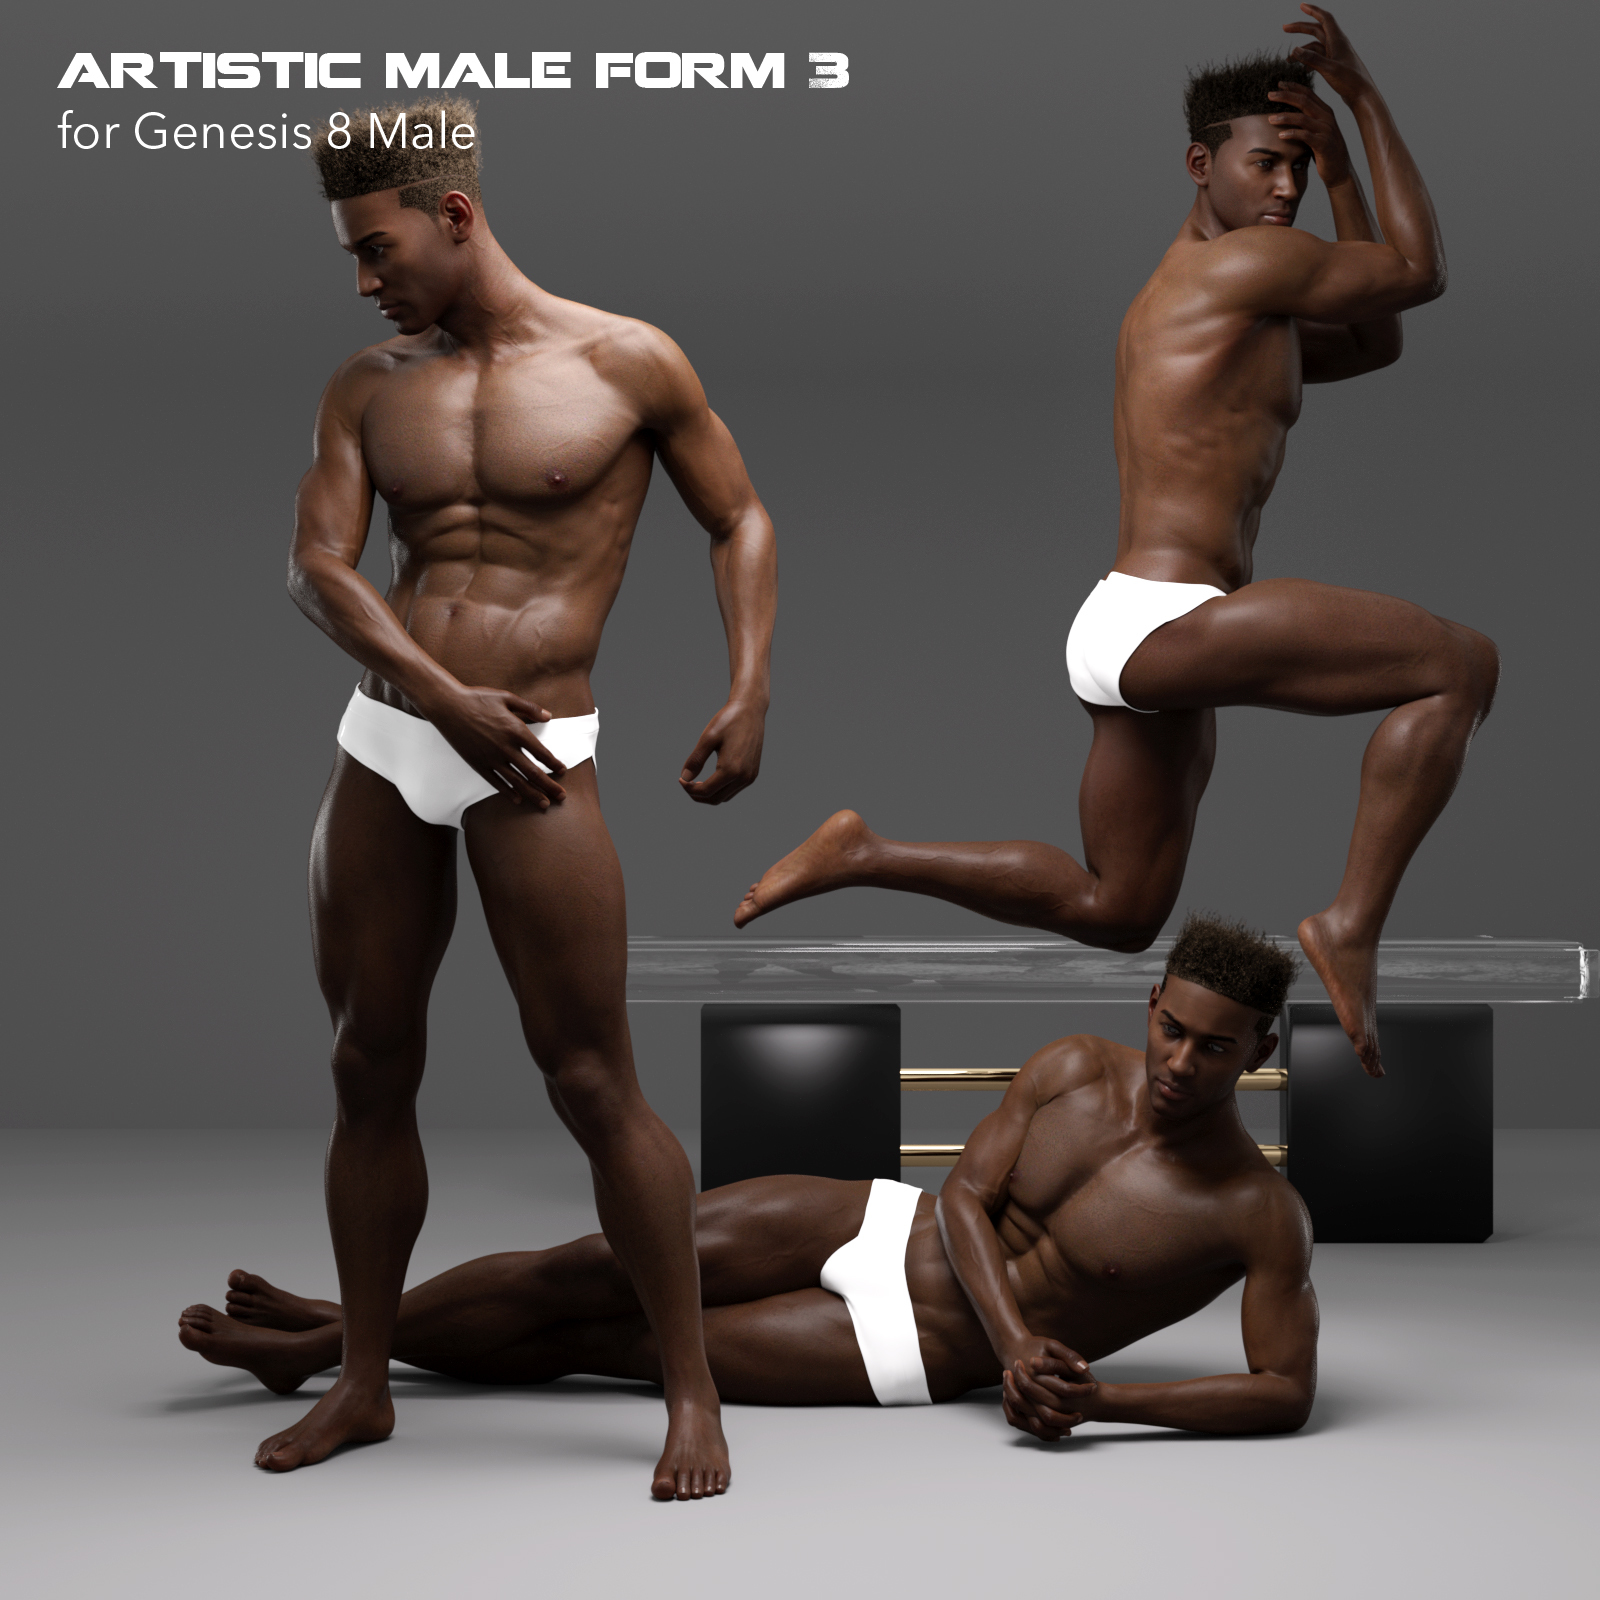 Artistic Male Form 3 for Genesis 8 Male by P7ArtJ5